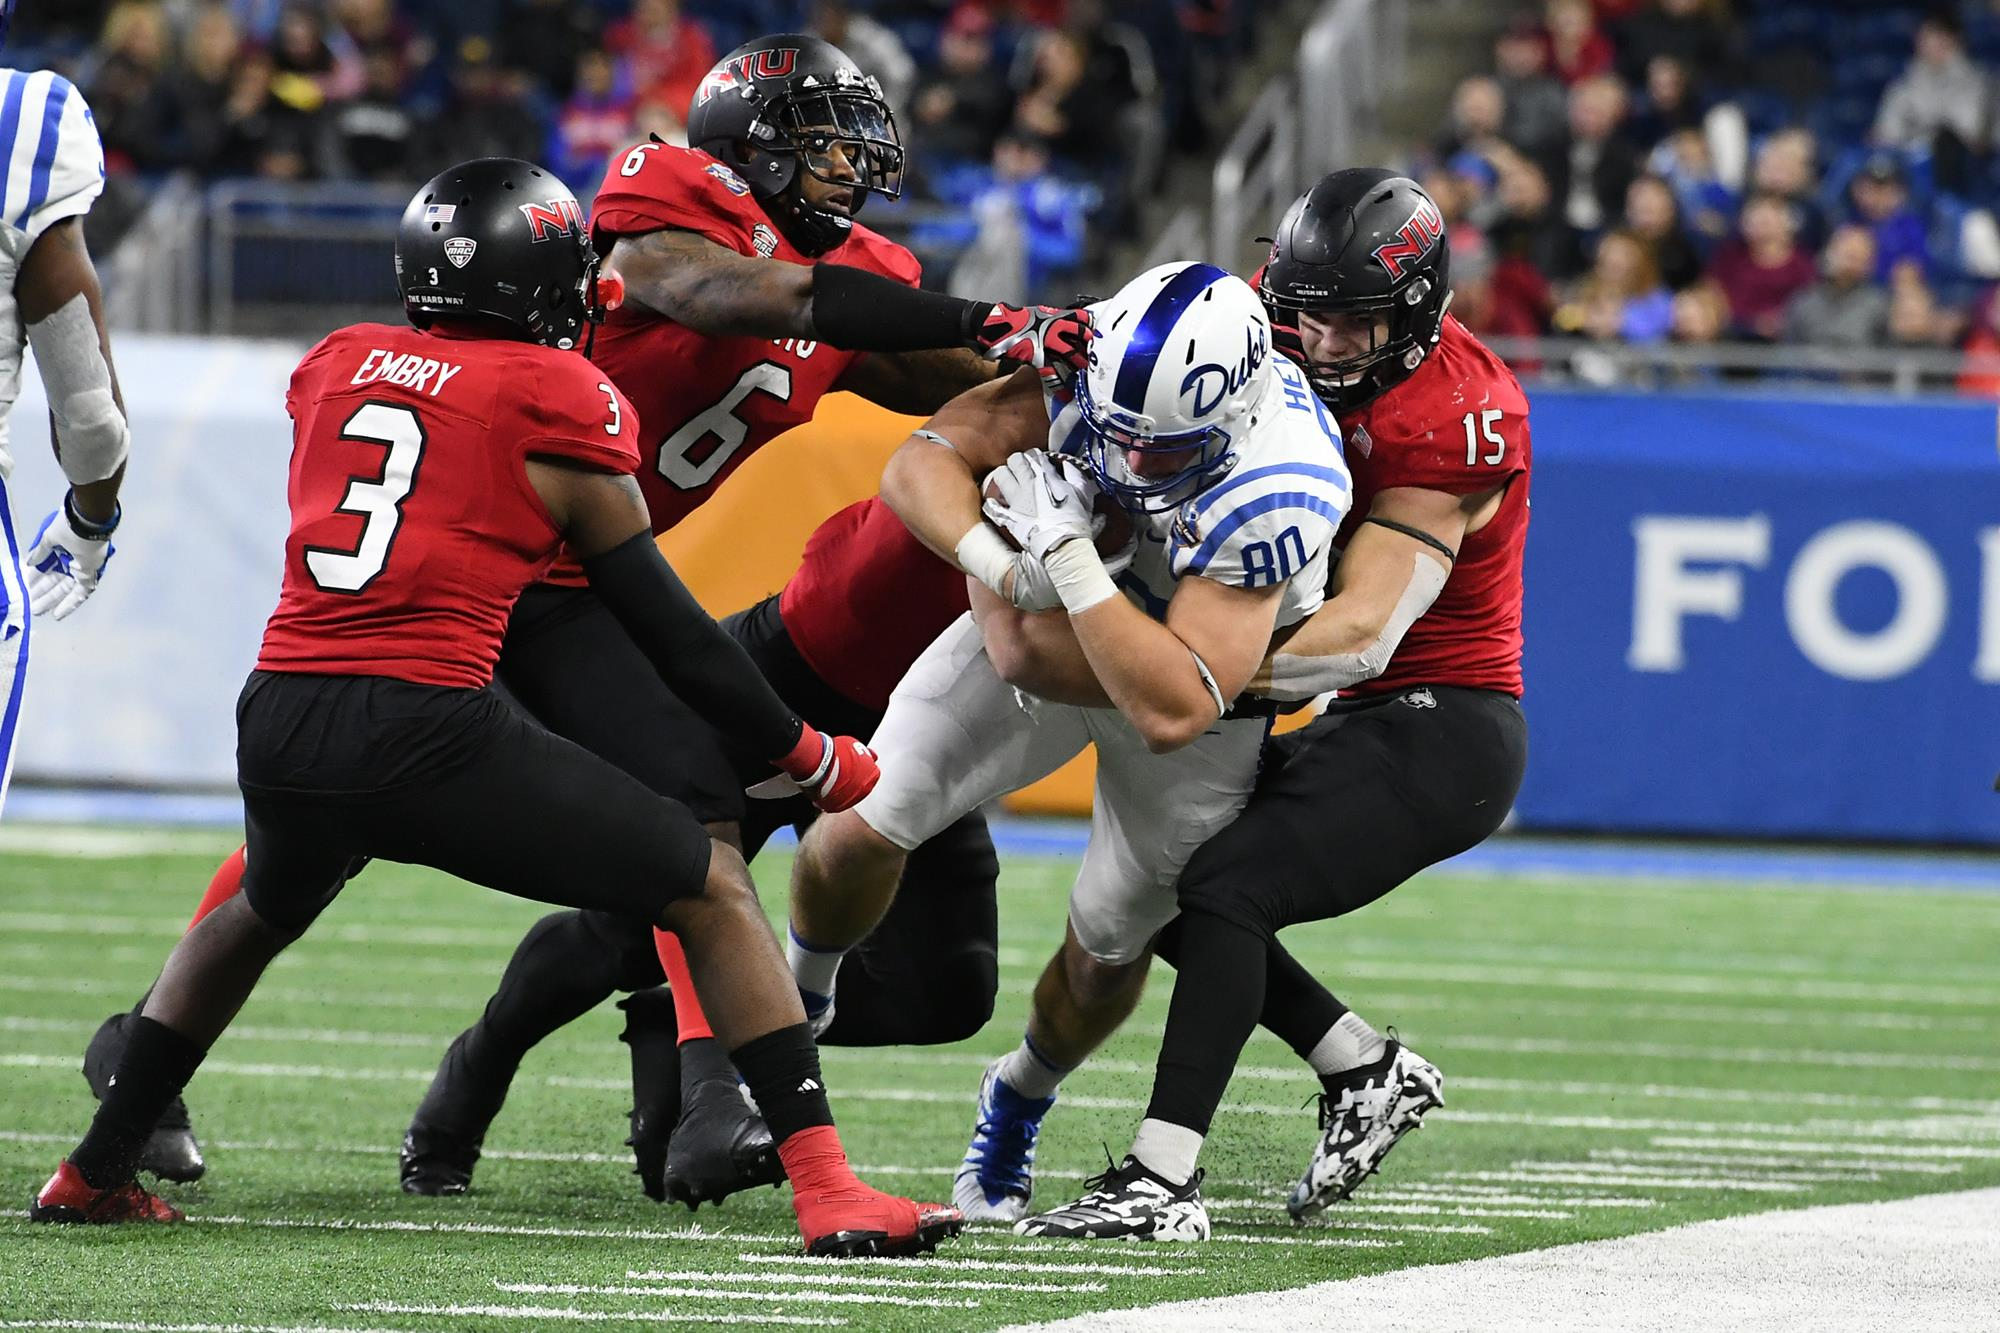 Niu Falls To Duke In 2017 Quick Lane Bowl 36 14 Niu Athletics